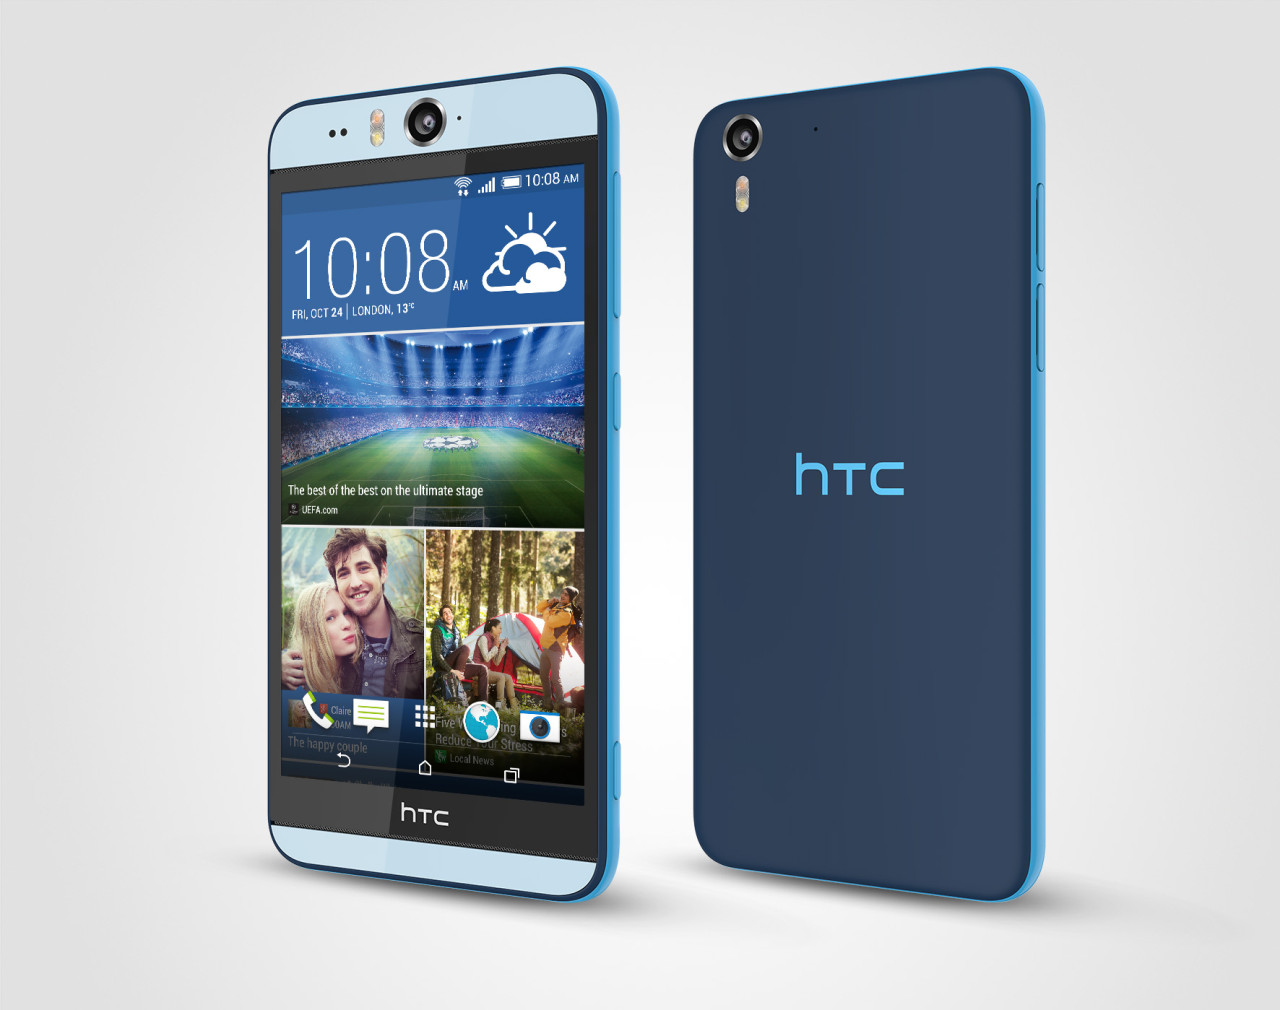 HTC-Desire-Eye-Matt-Blue-3-300dpi-1.jpg